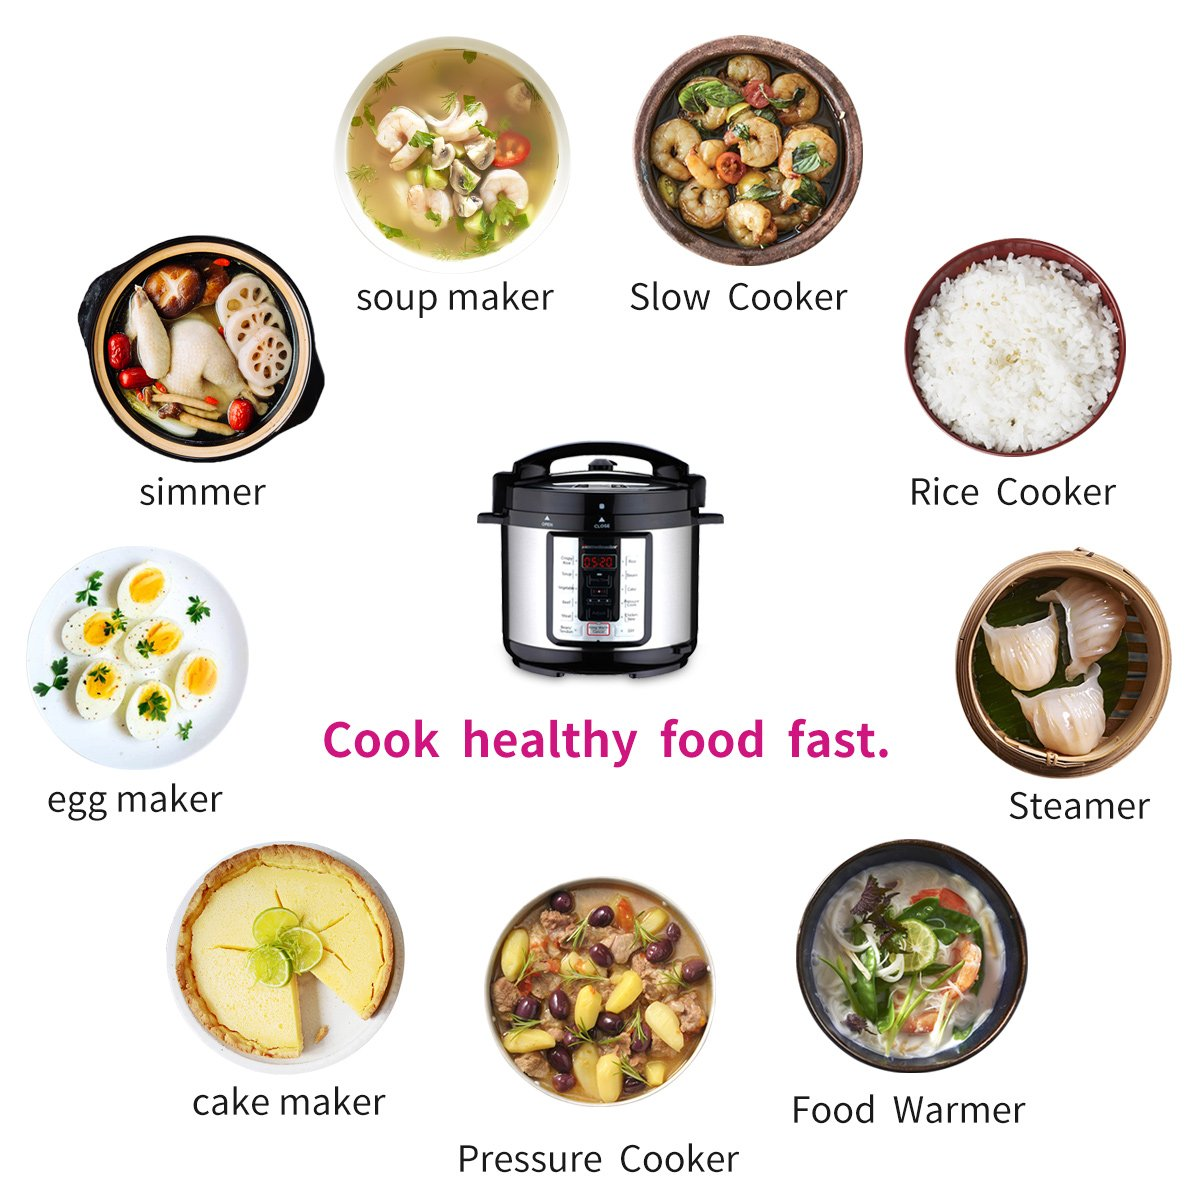 Homeleader 9-in-1 Multi-Use Programmable Pressure Cooker, Digital Electric Pressure Cooker, Rice Cooker, Slower Cooker, Soup Maker, Crock Pot and Warmer, 6Qt Stainless Steel Pot by Homeleader (Image #5)